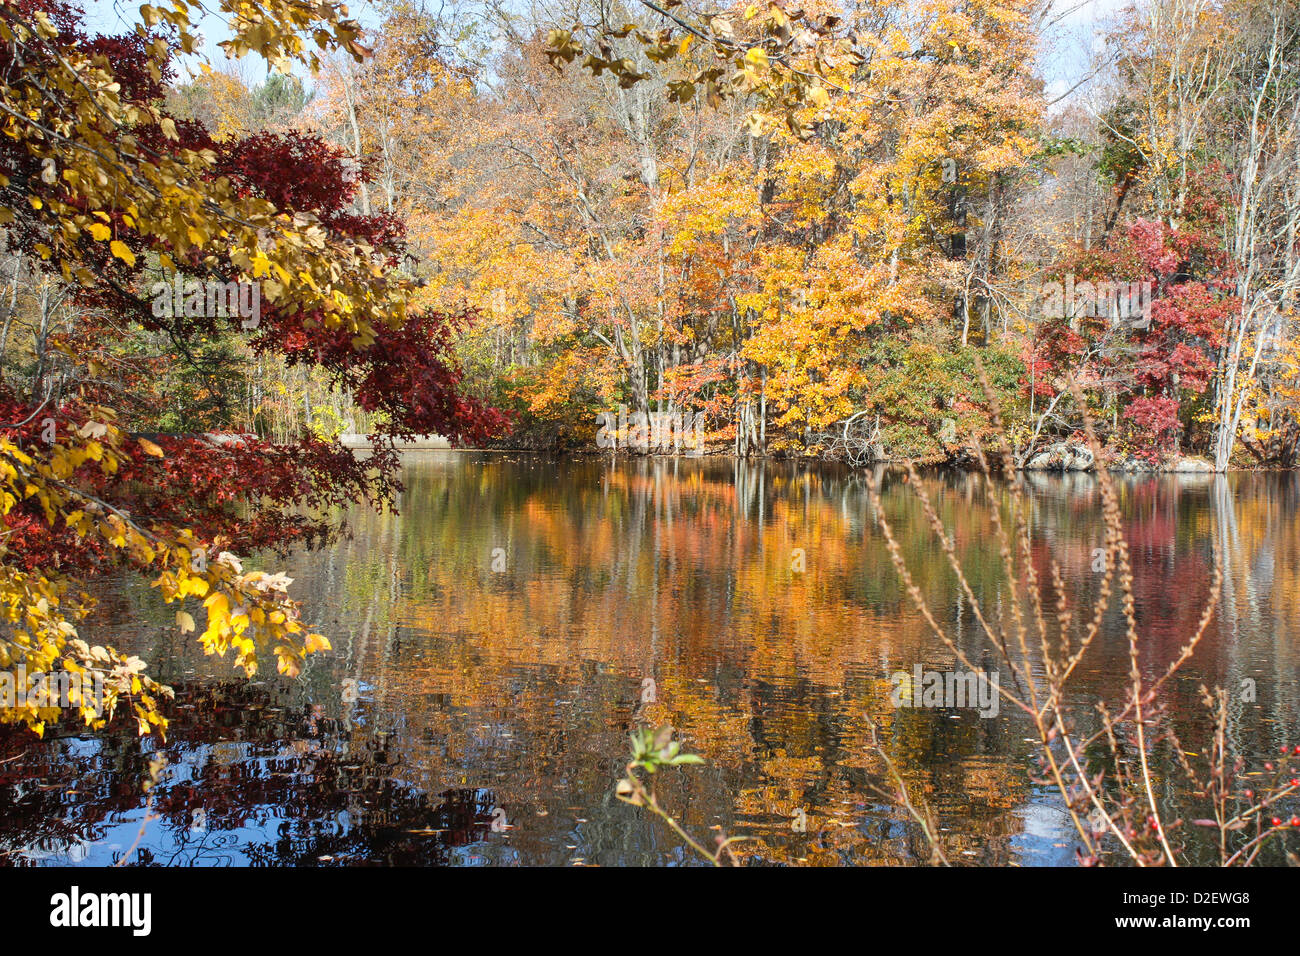 Reflections of colorful foliage on lake water, autumn - Stock Image